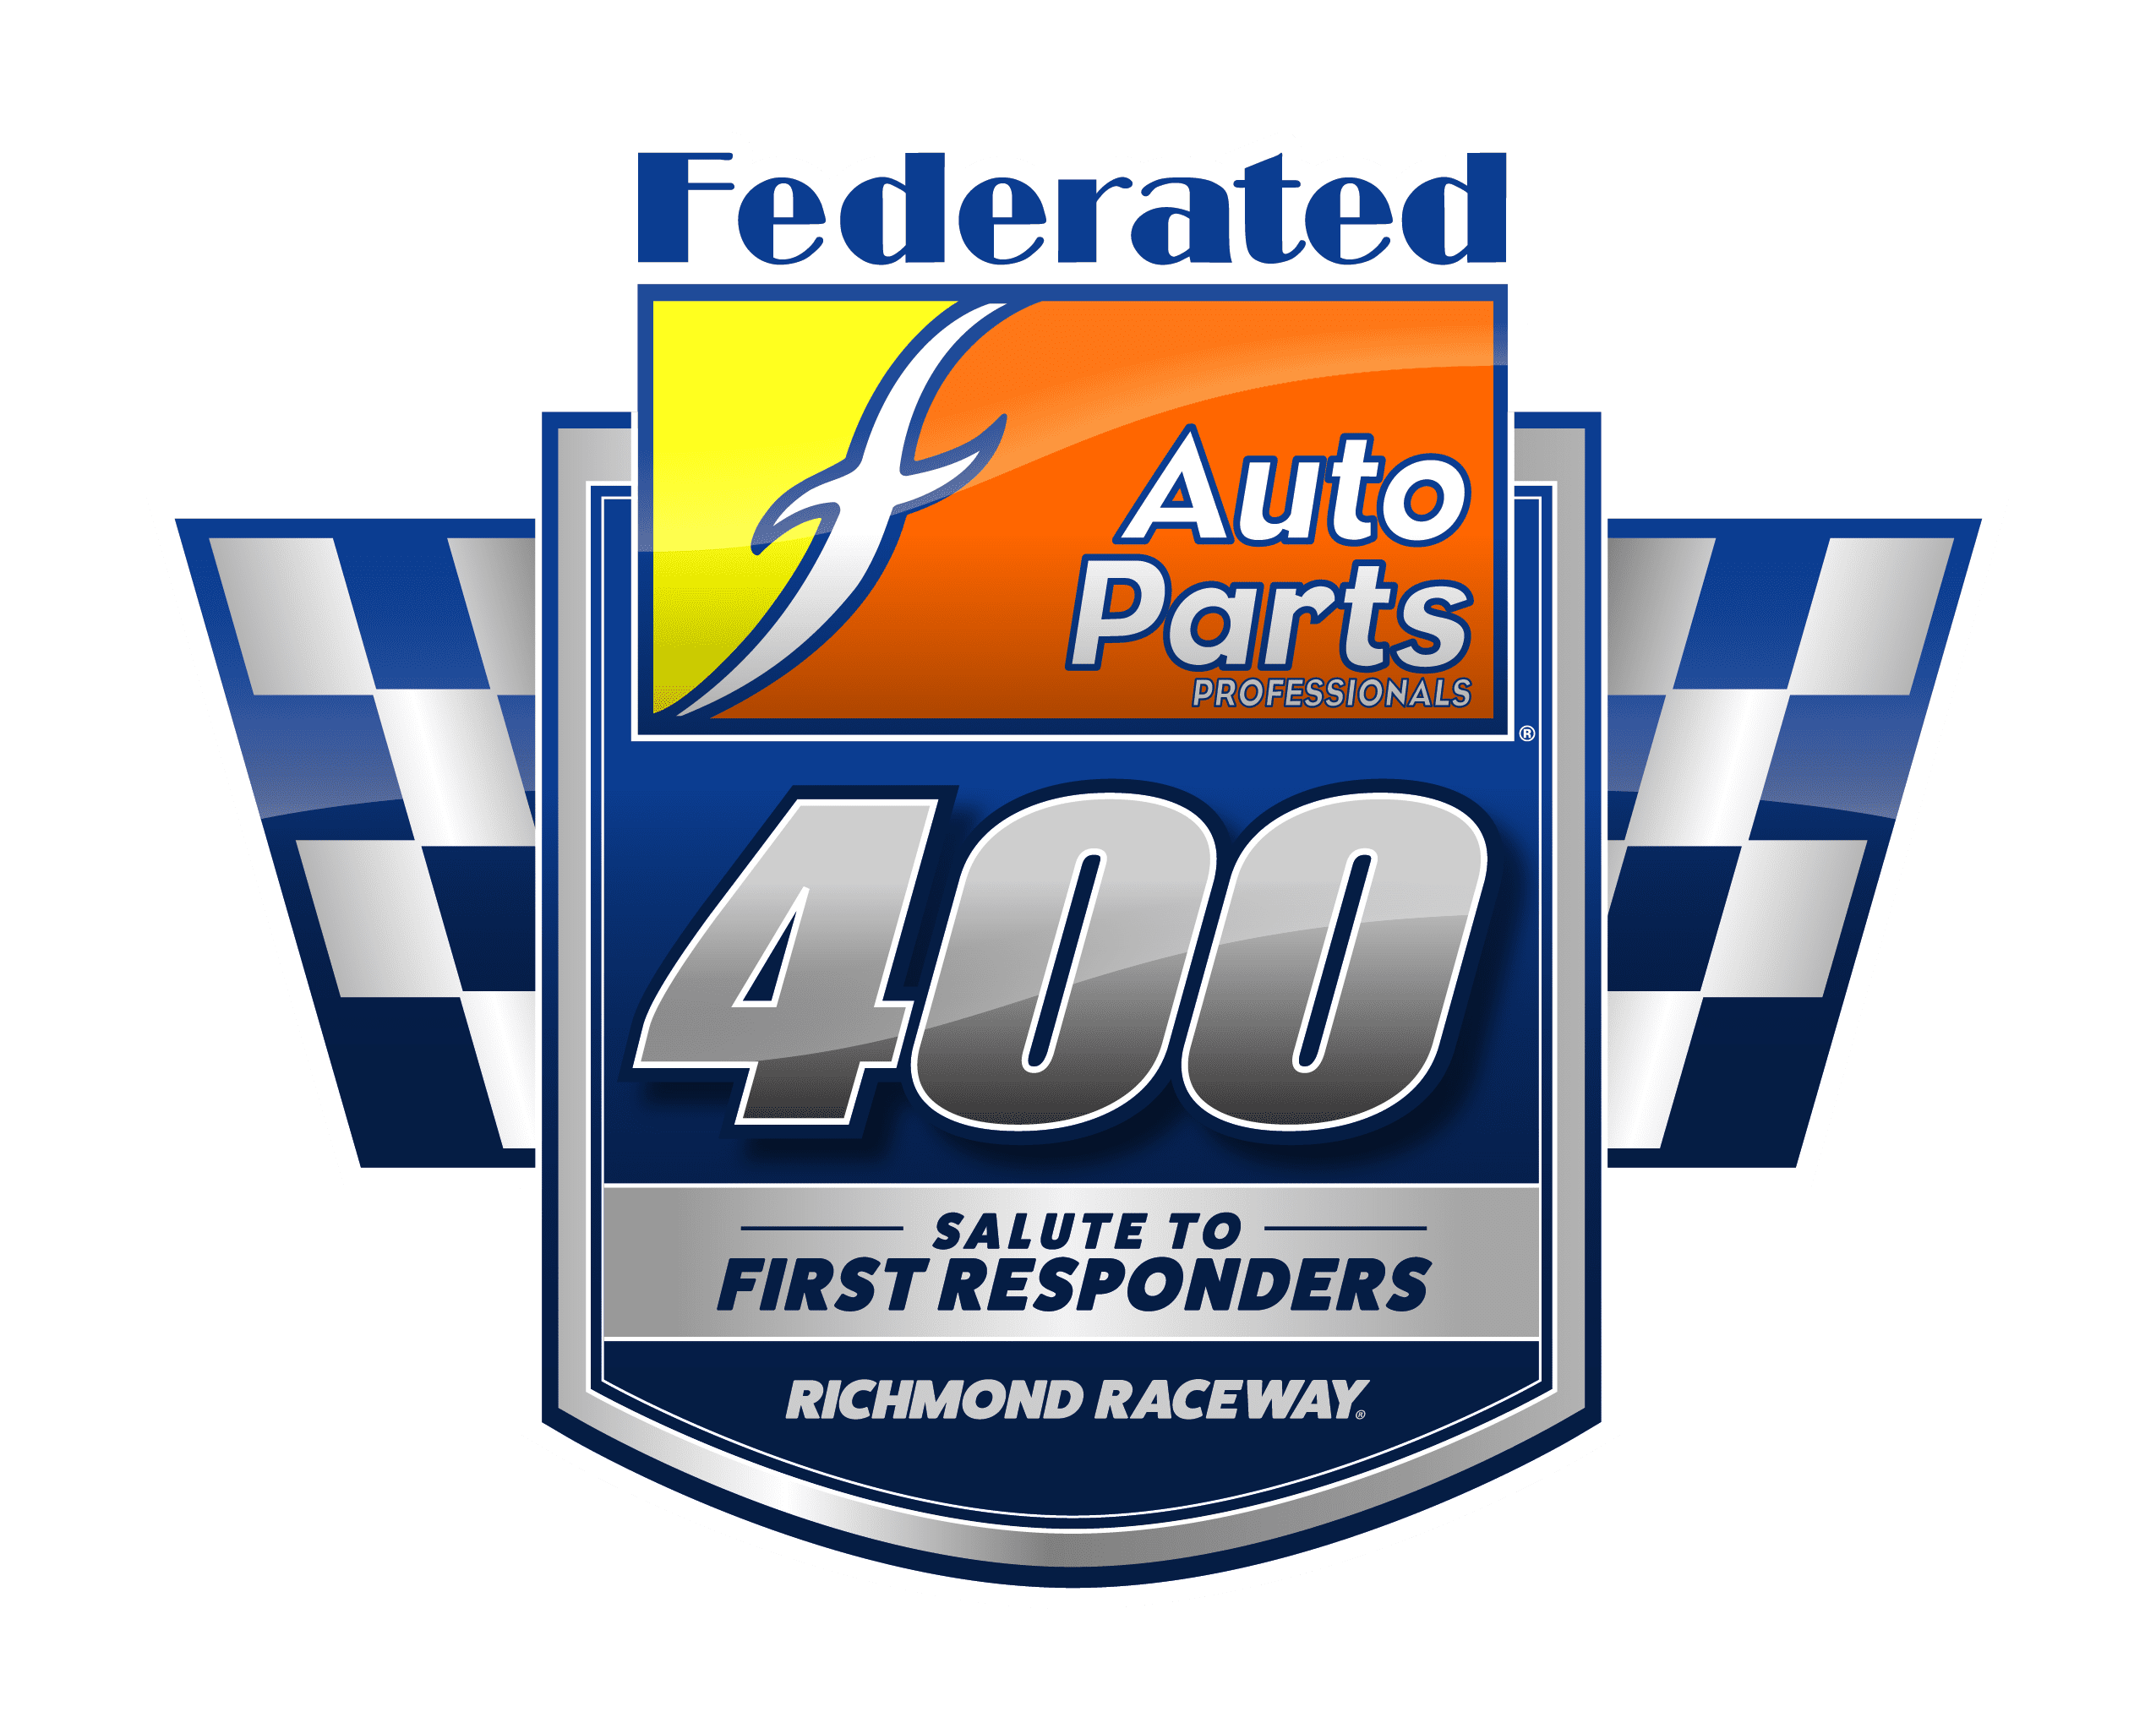 Federated-Auto-Parts-400-Salute-to-First